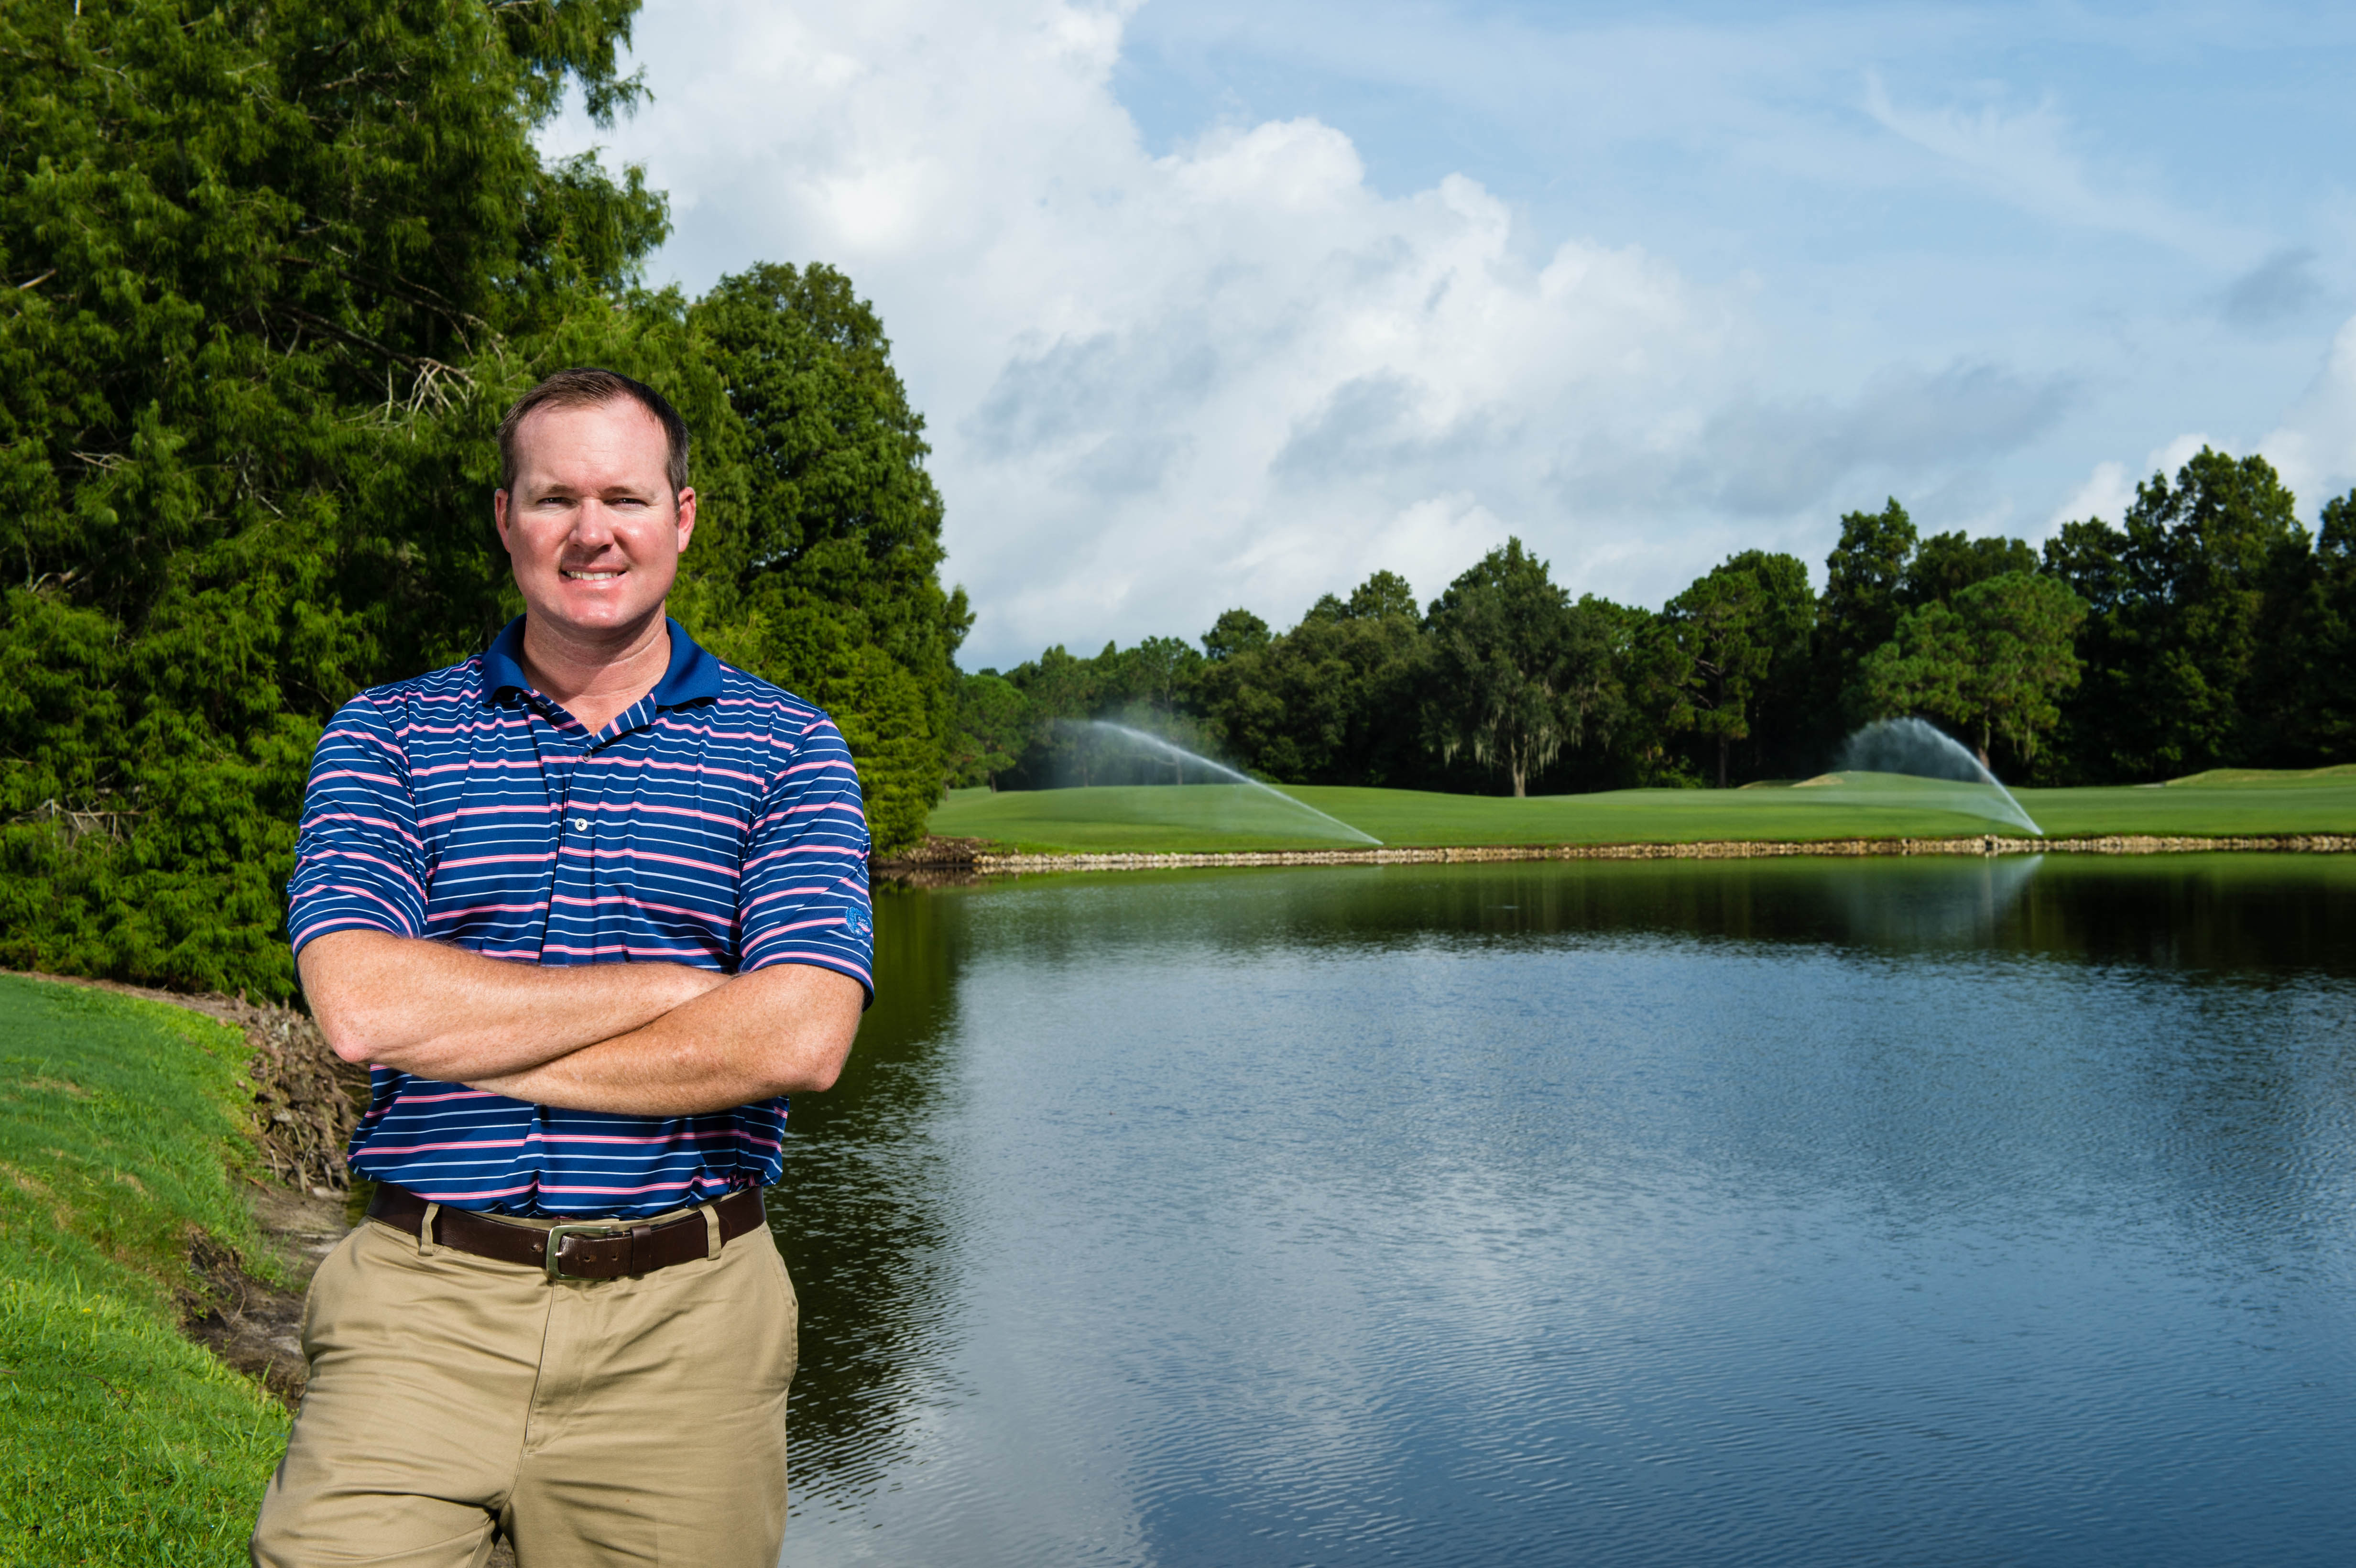 Gator Creek Golf Course Superintendent